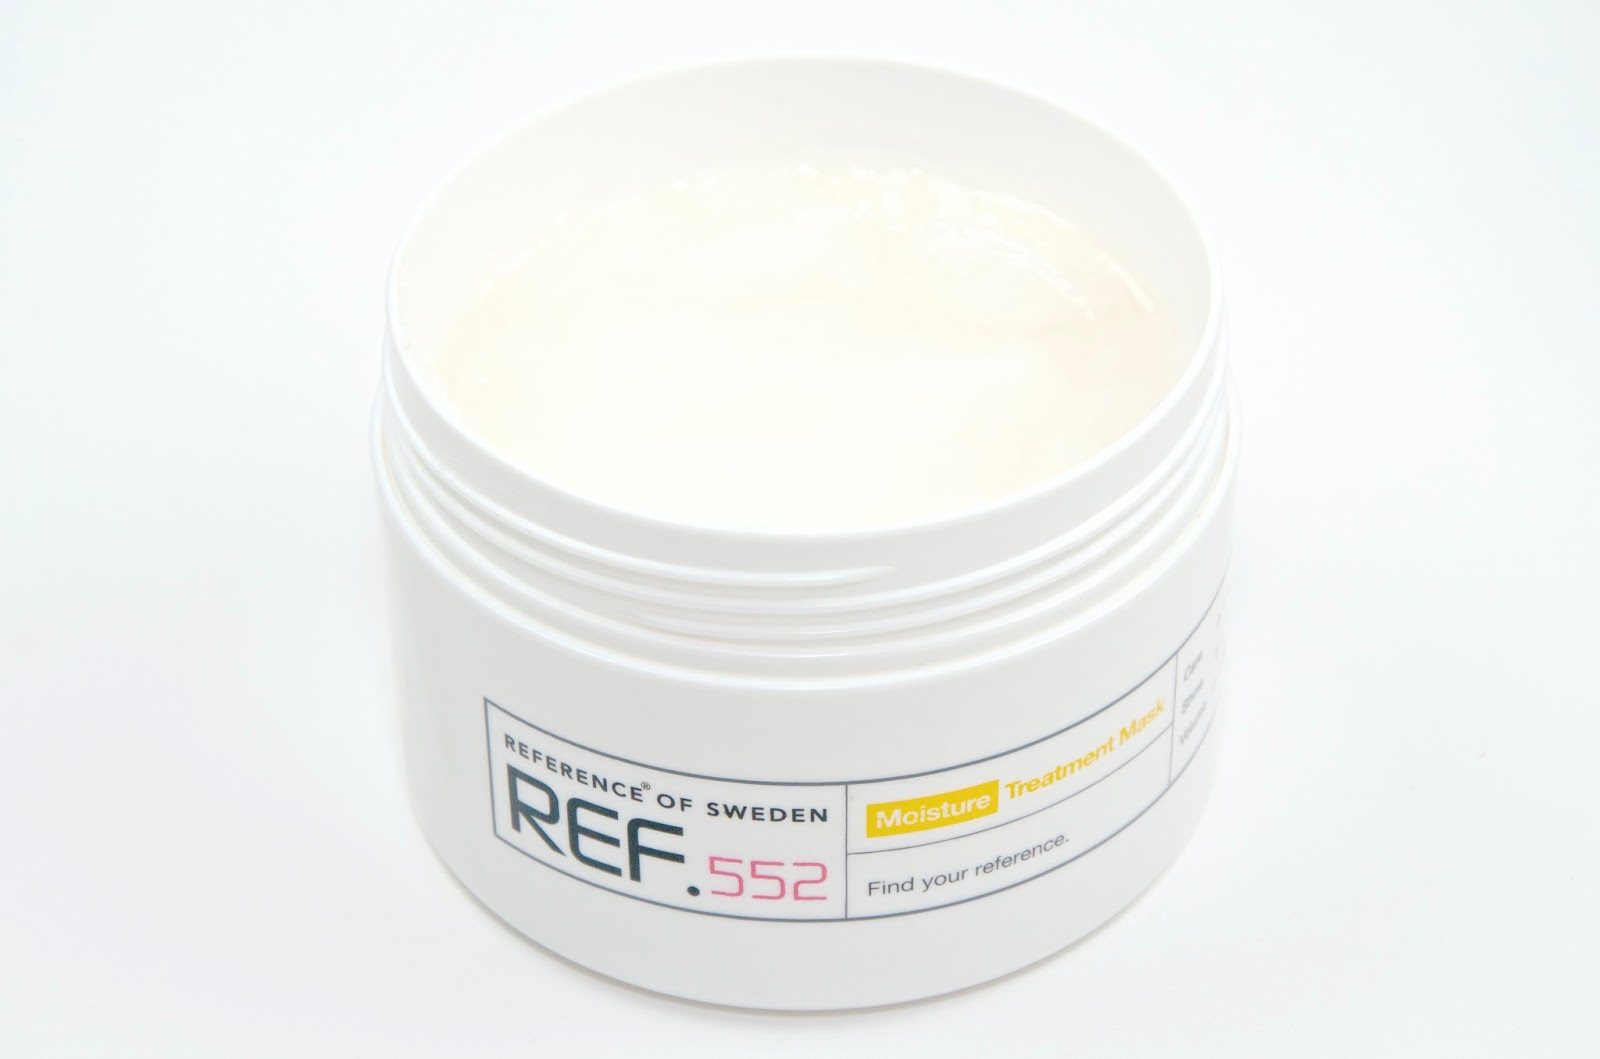 Reference of Sweden REF.552 Moisture Treatment Mask